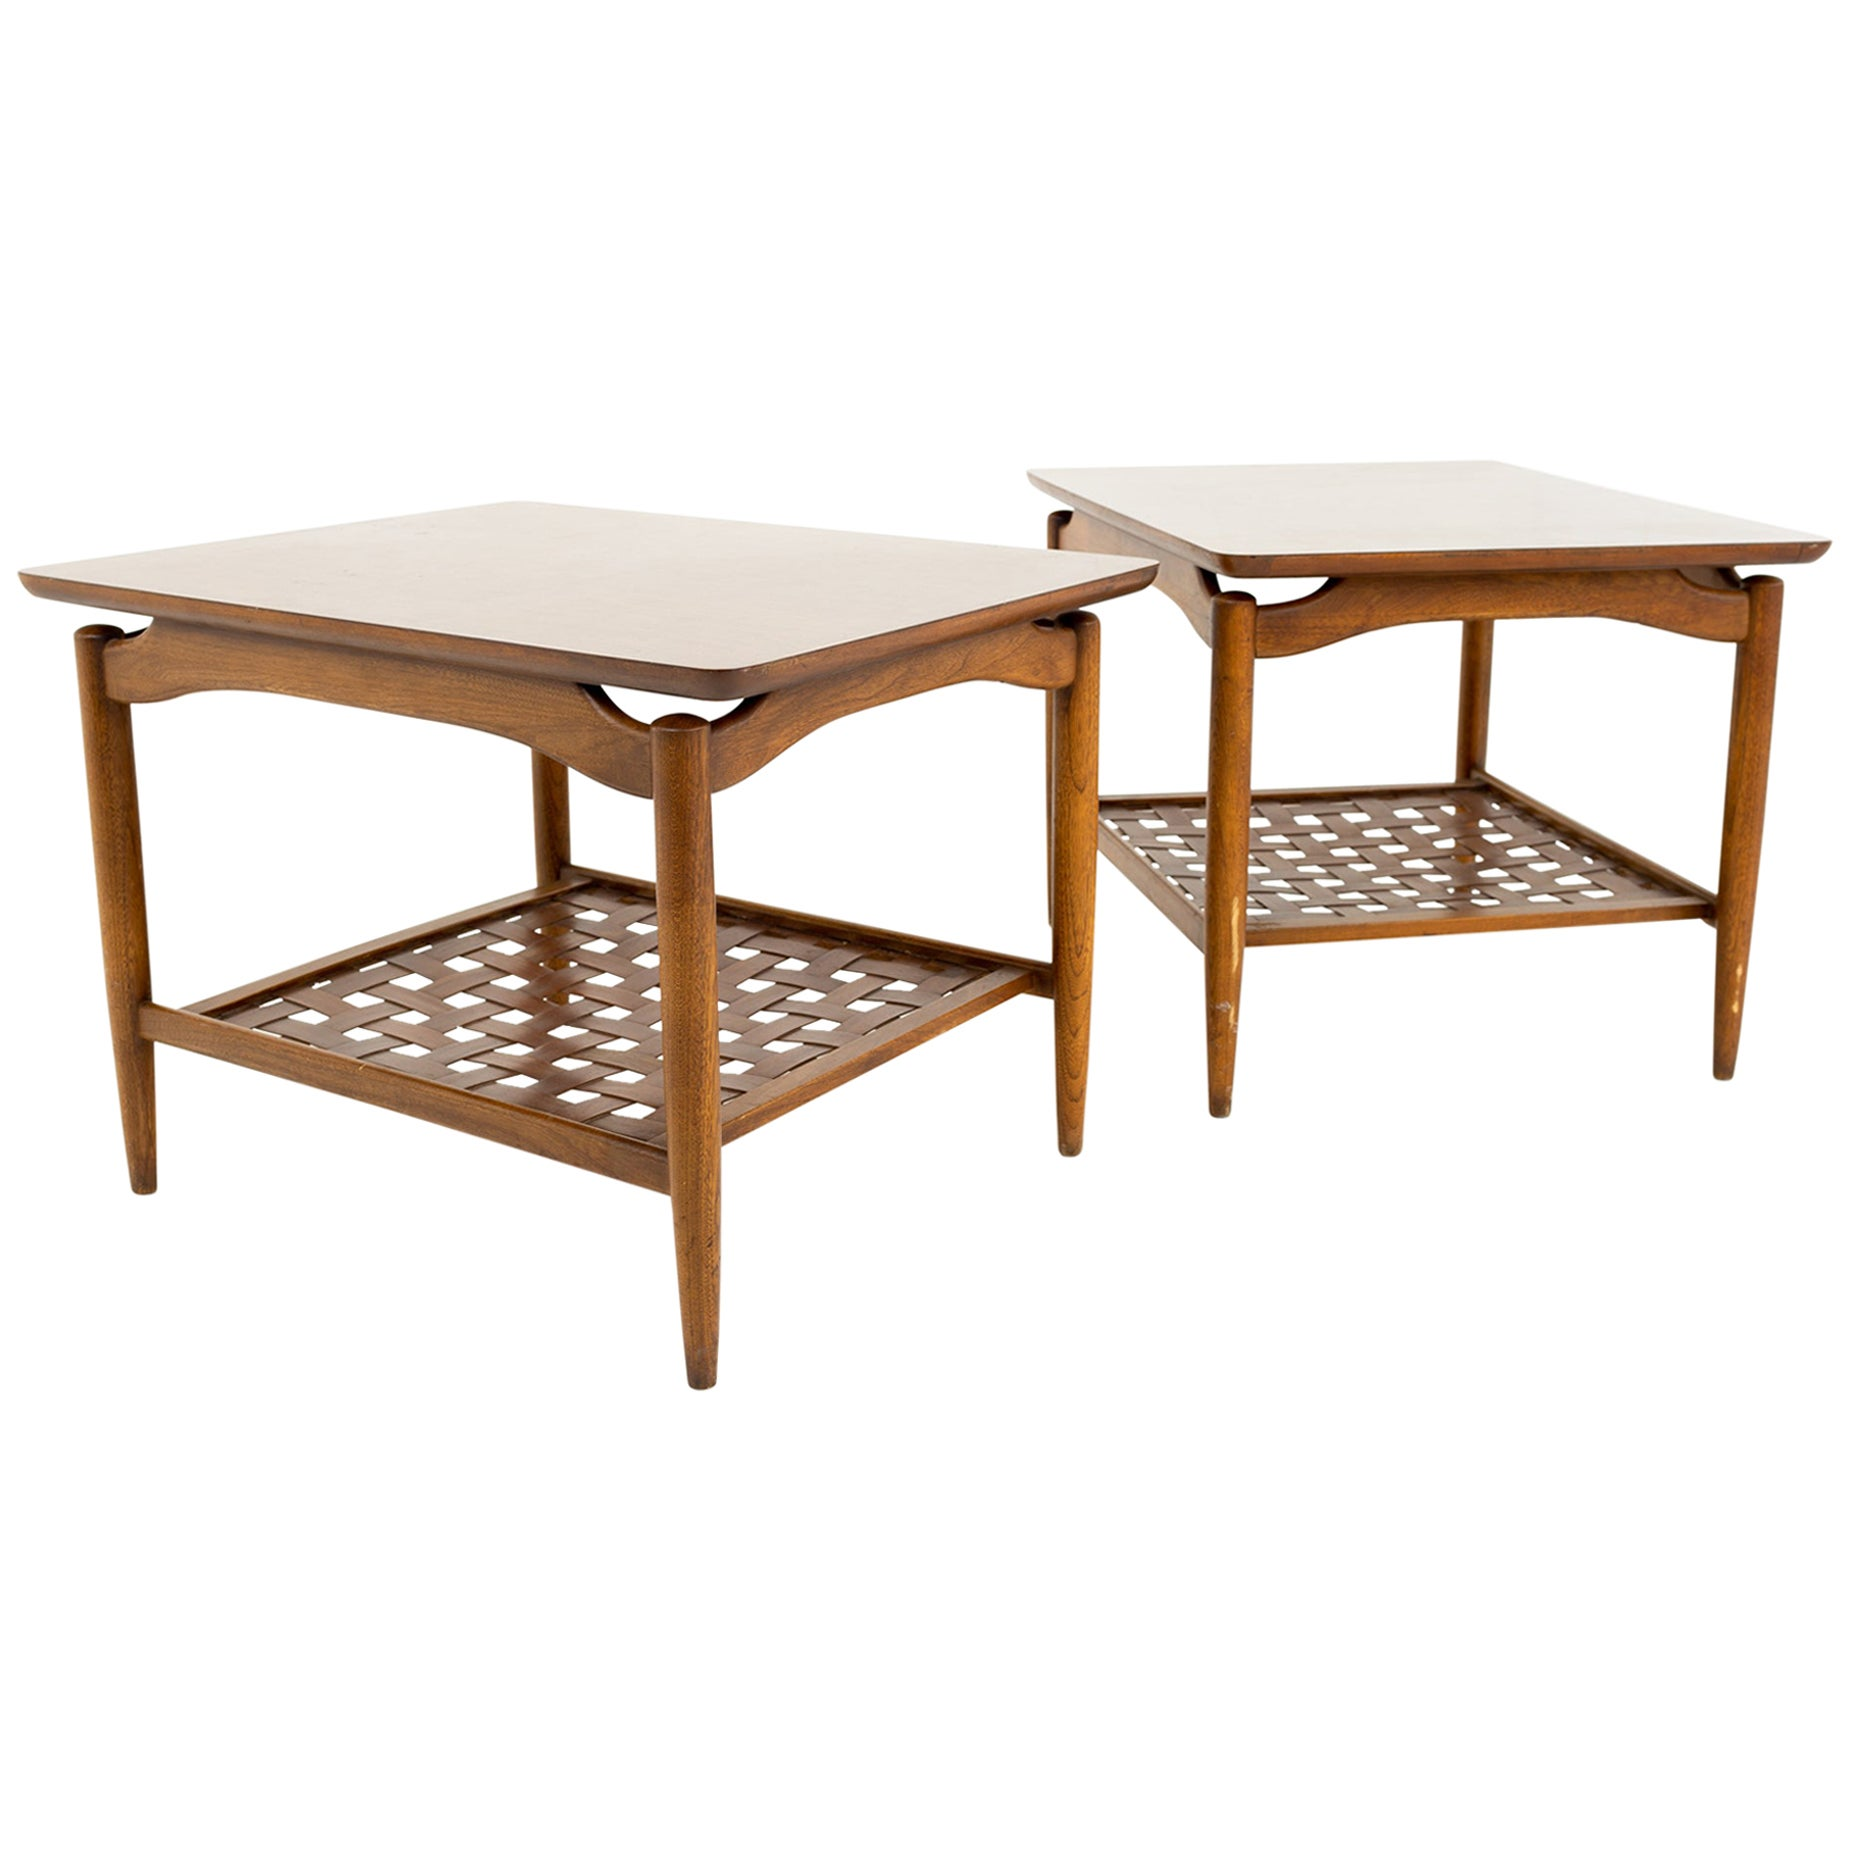 Greta Magnusson Grossman Style MCM Walnut and Formica Top Side End Tables, Pair